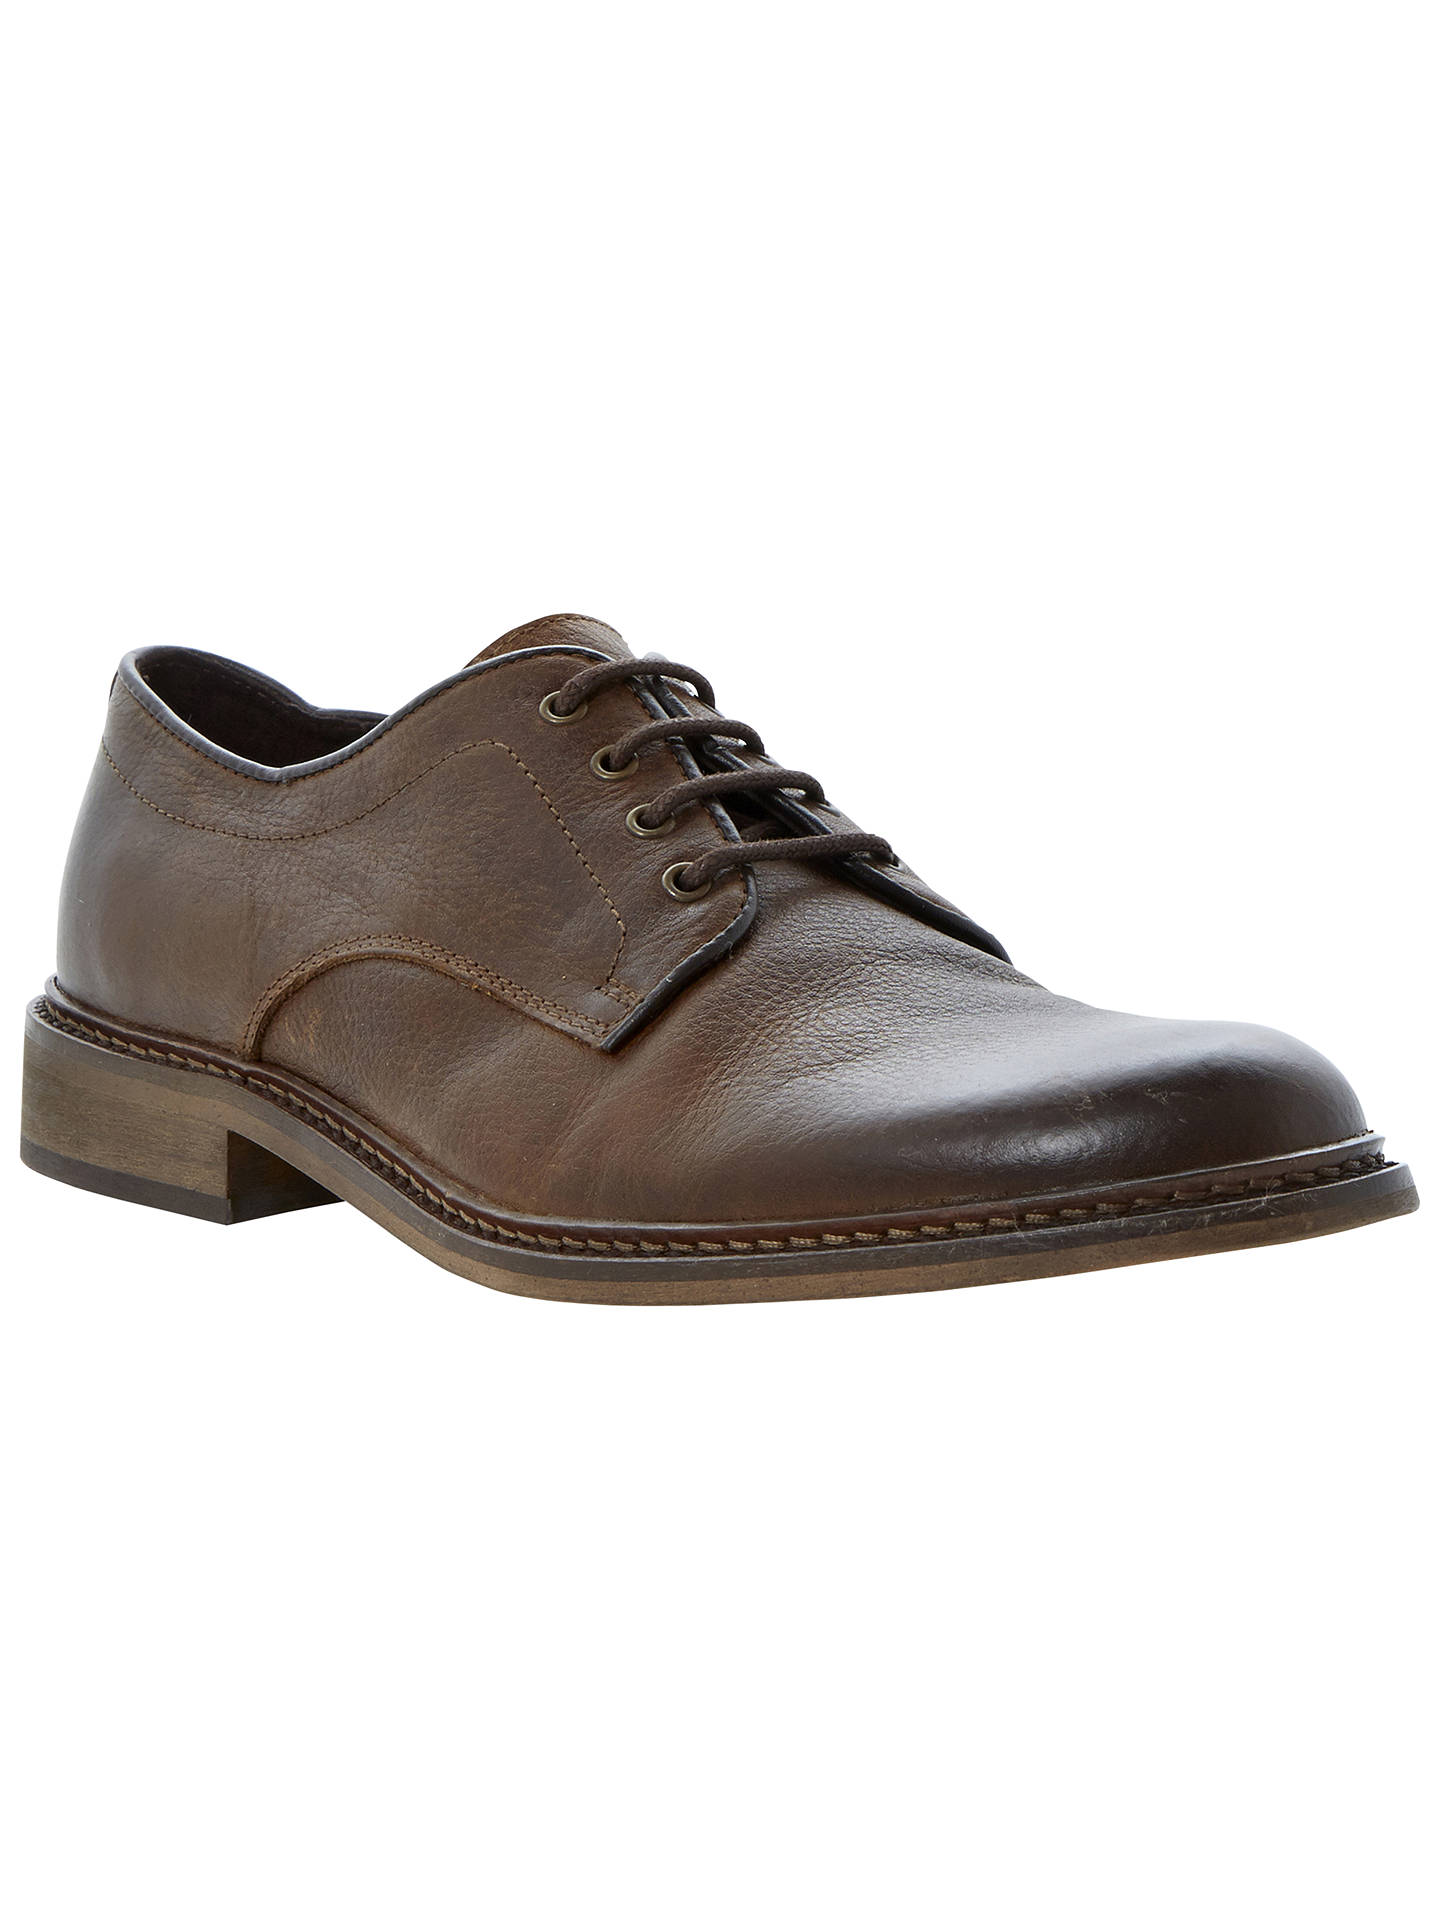 9976a81cd18 Bertie Brash Gibson Lace Up Shoes at John Lewis & Partners